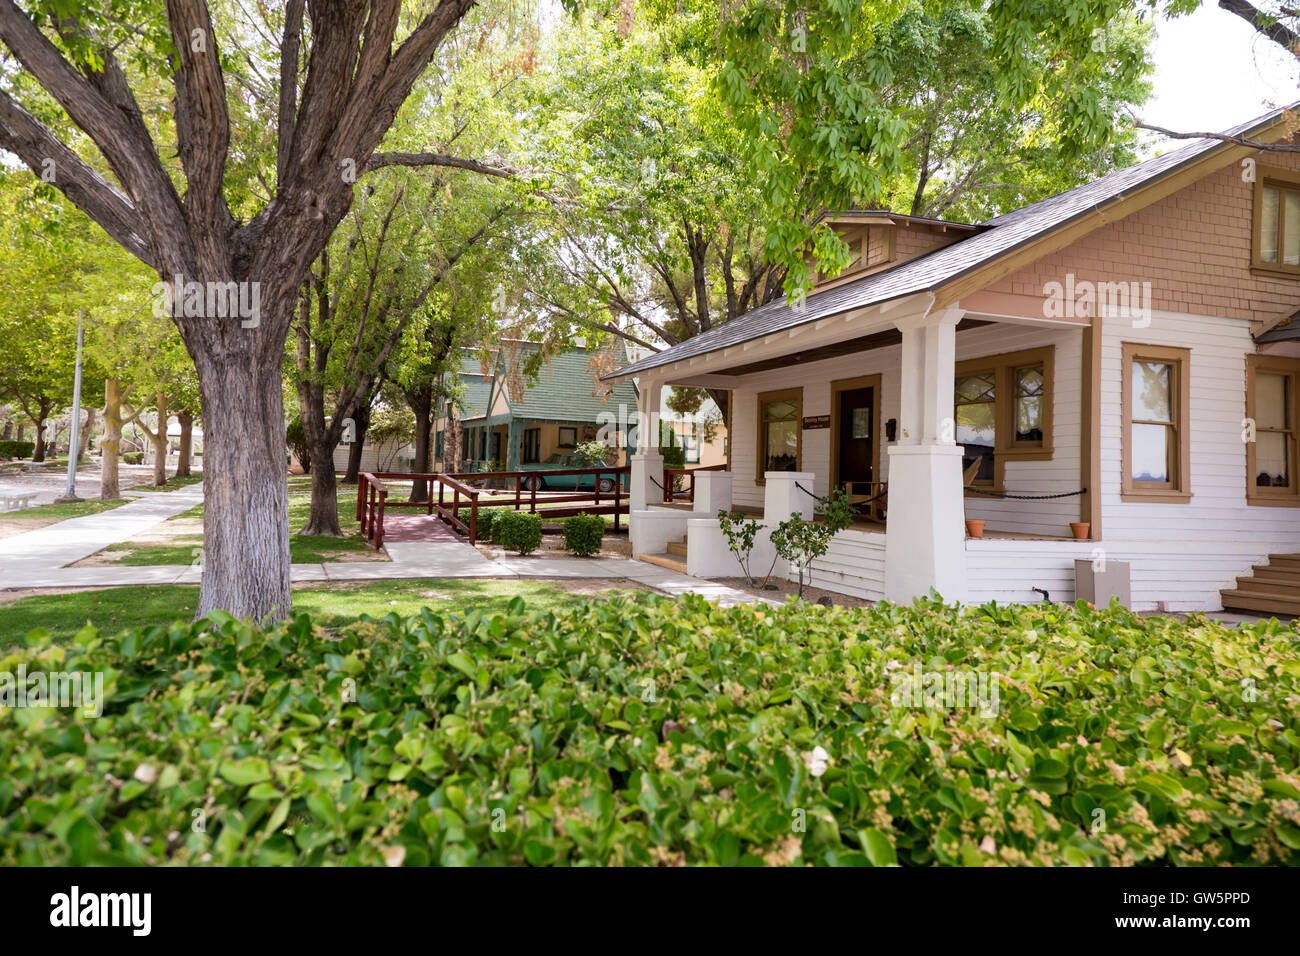 Las Vegas, Nevada - The Heritage Street of Historic Homes at the Clark County Museum. - Stock Image